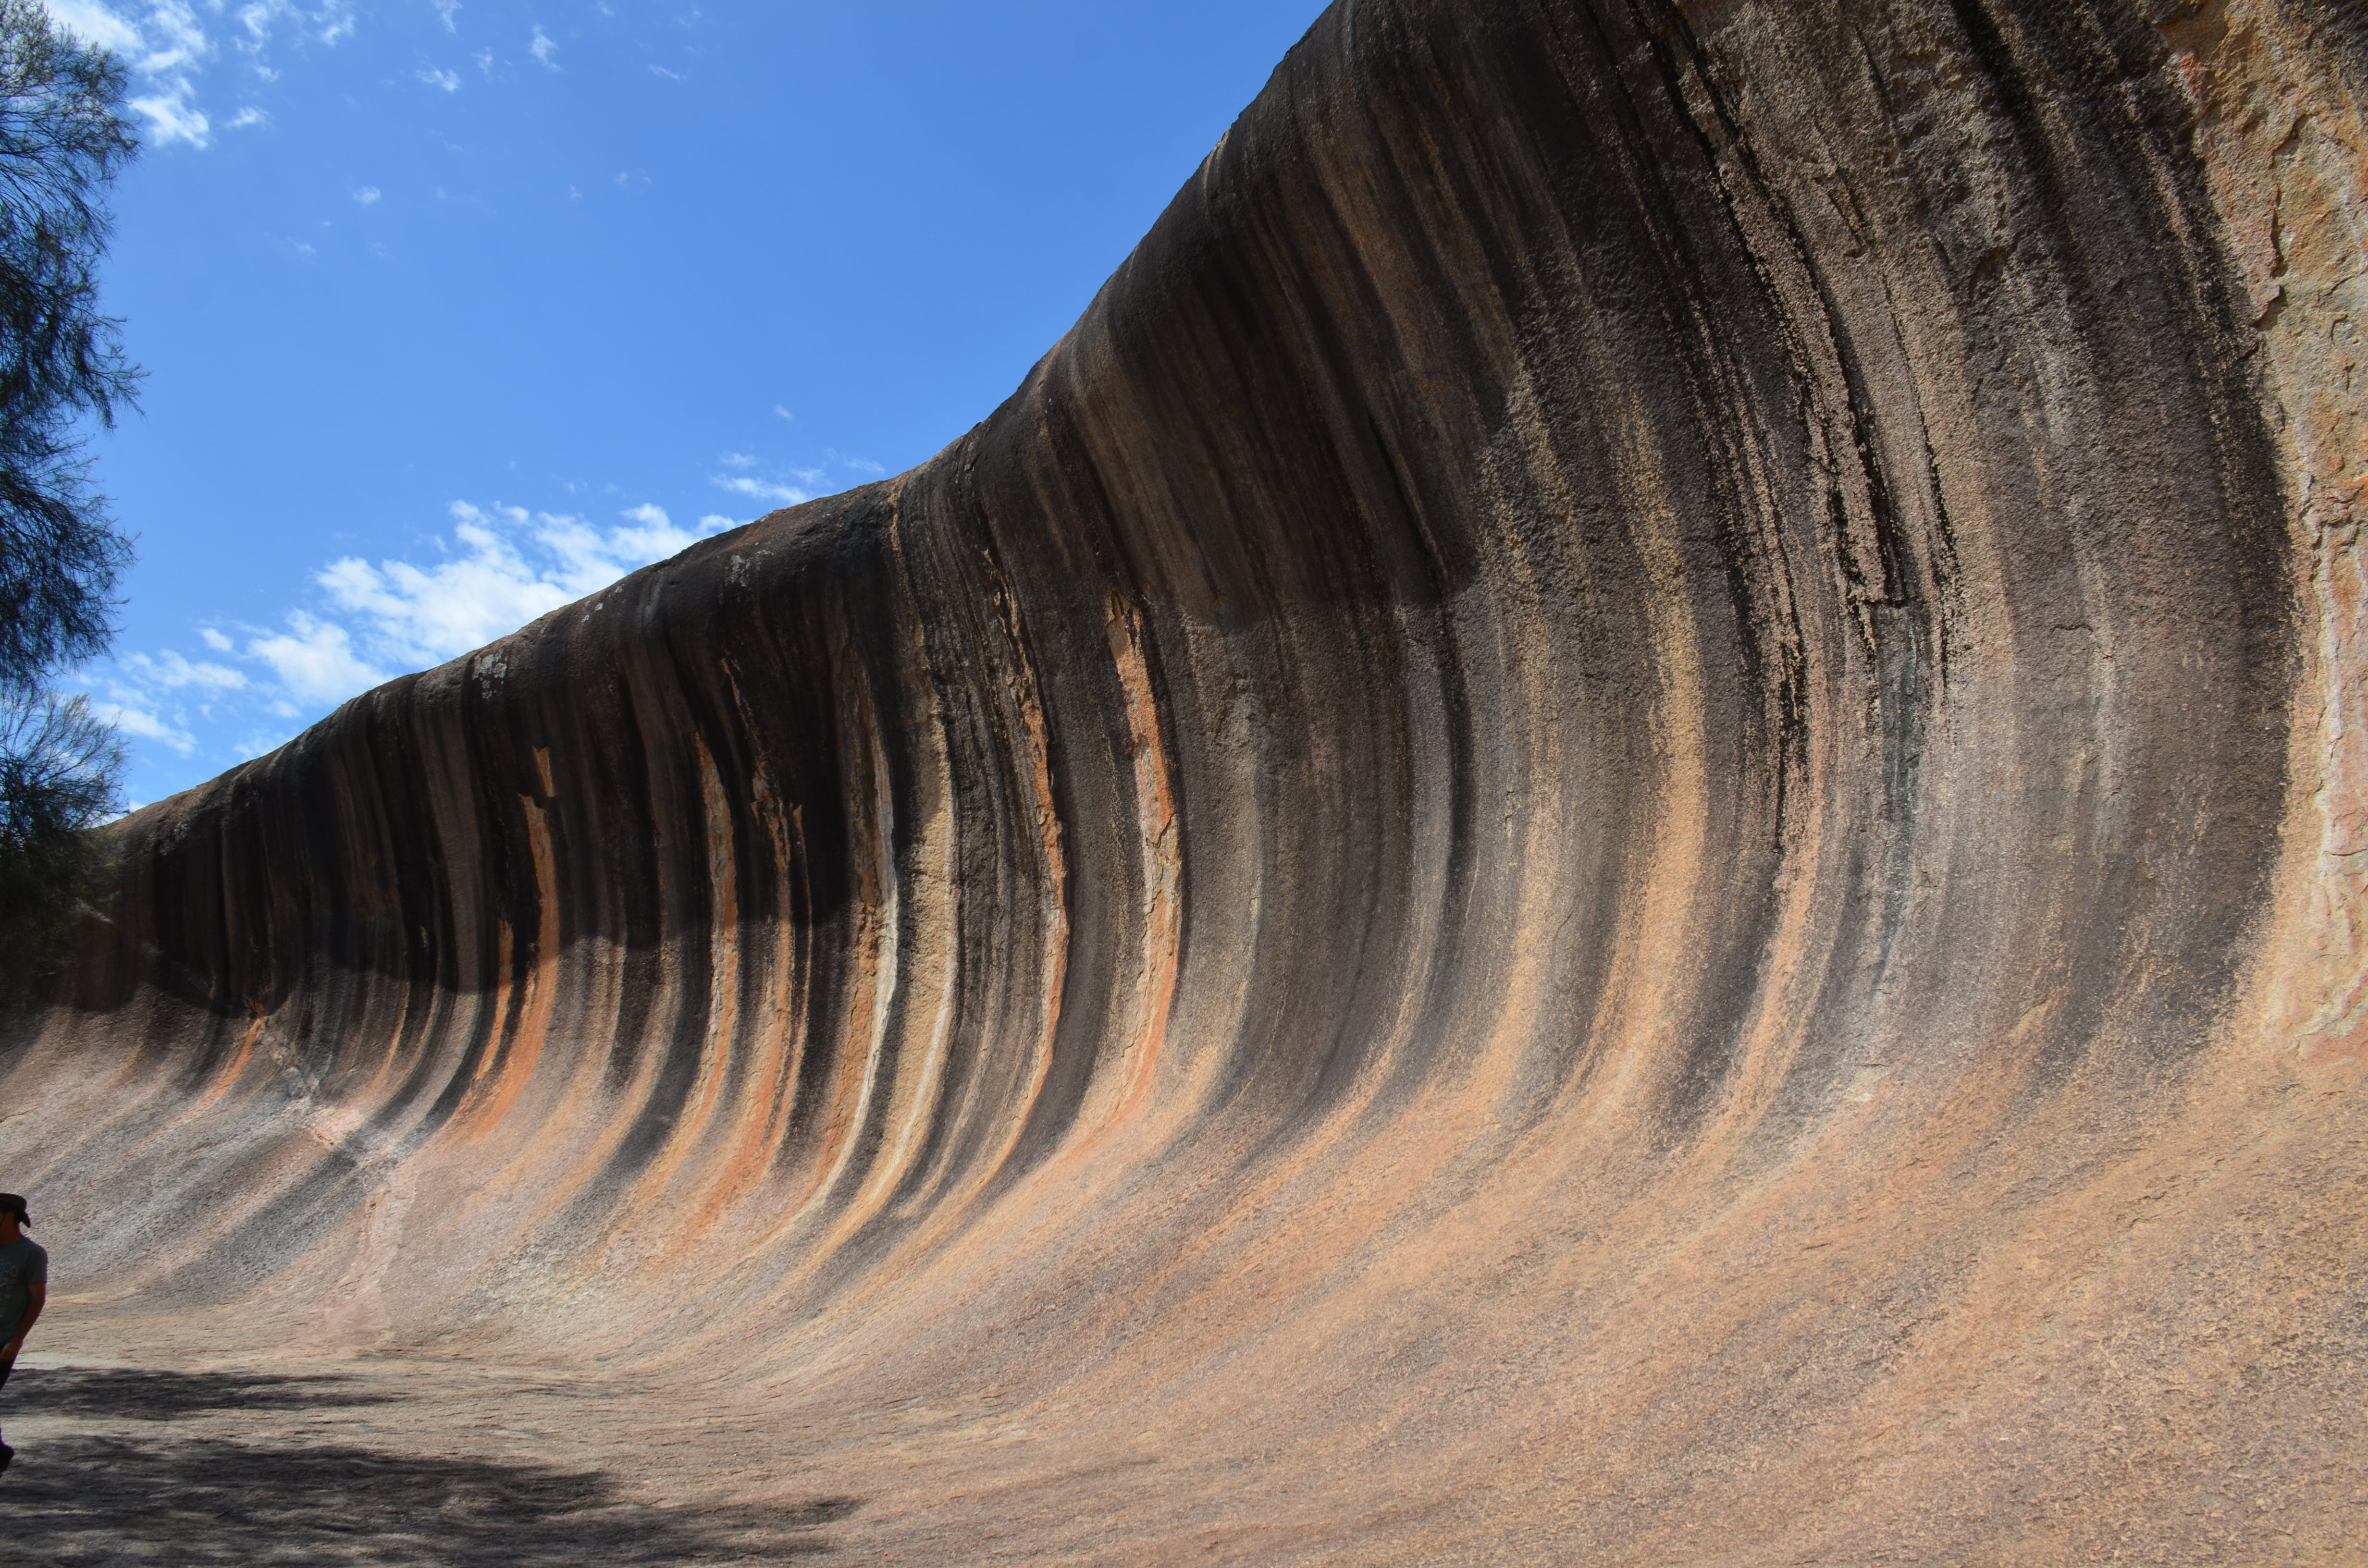 Free stock photo of outback, Western Australia, Wave Rock, natural rock formation